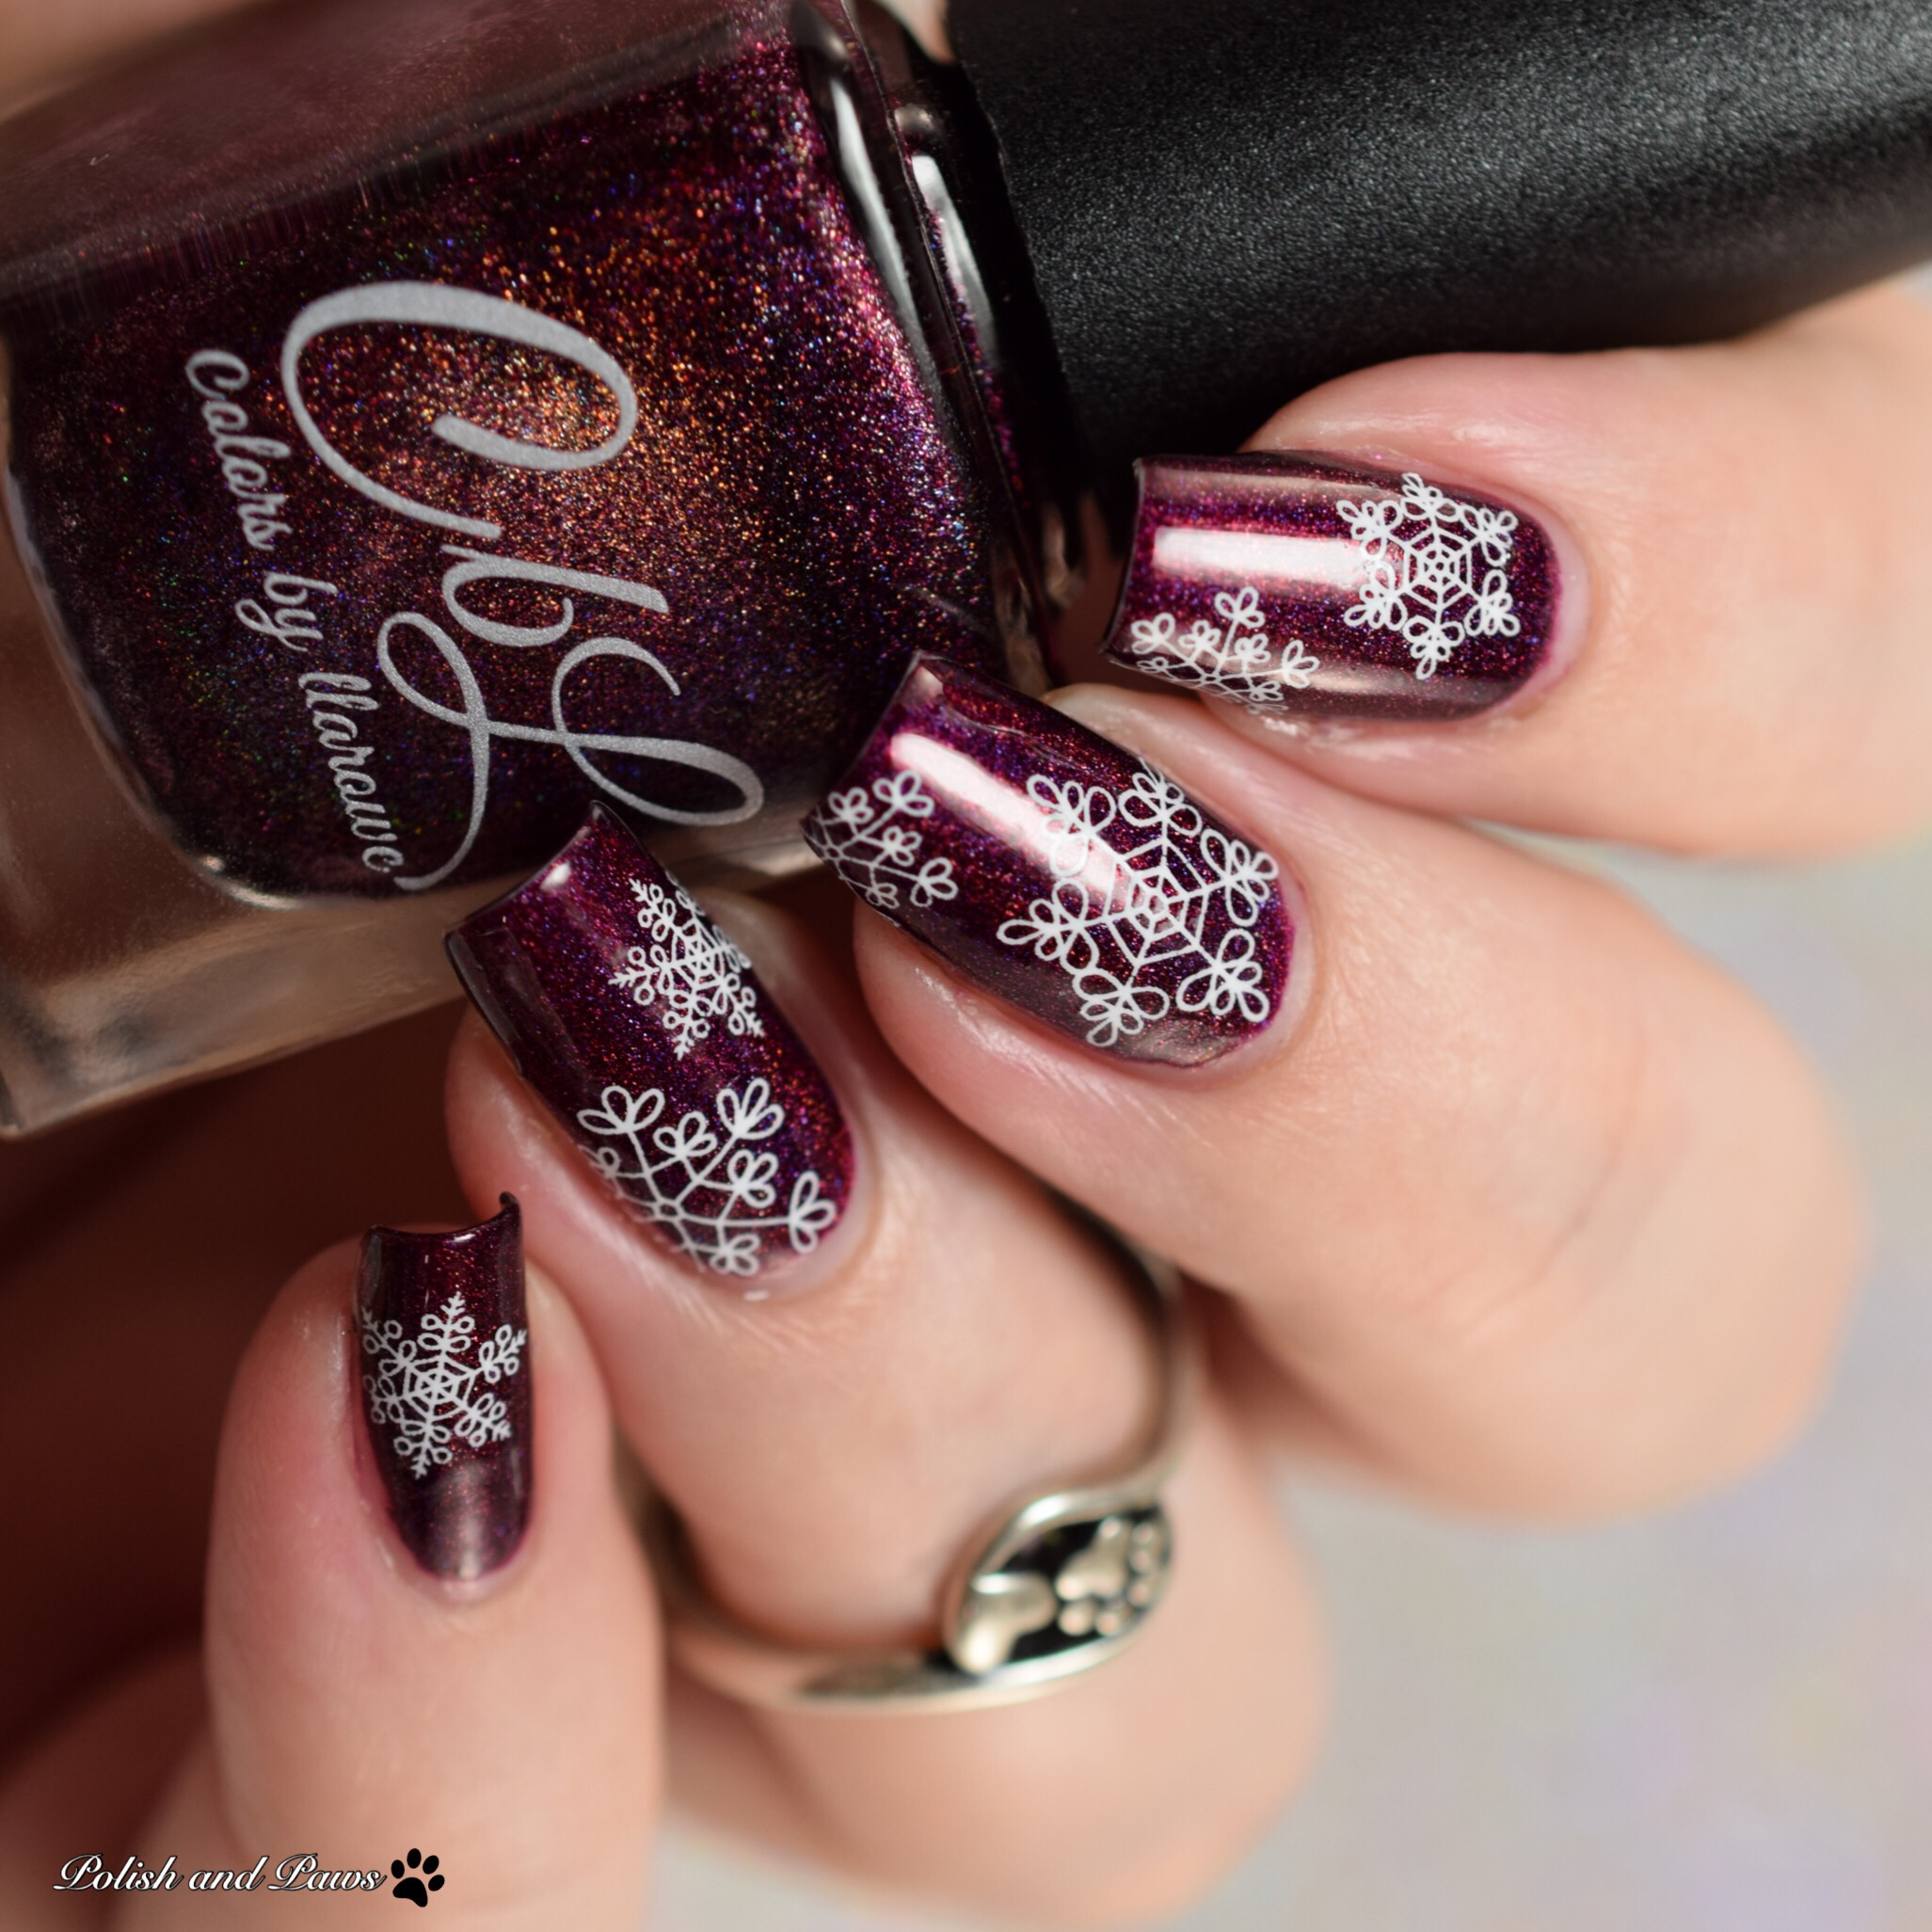 MILV Snowflake Water Decals over CbL Berries in the Snow